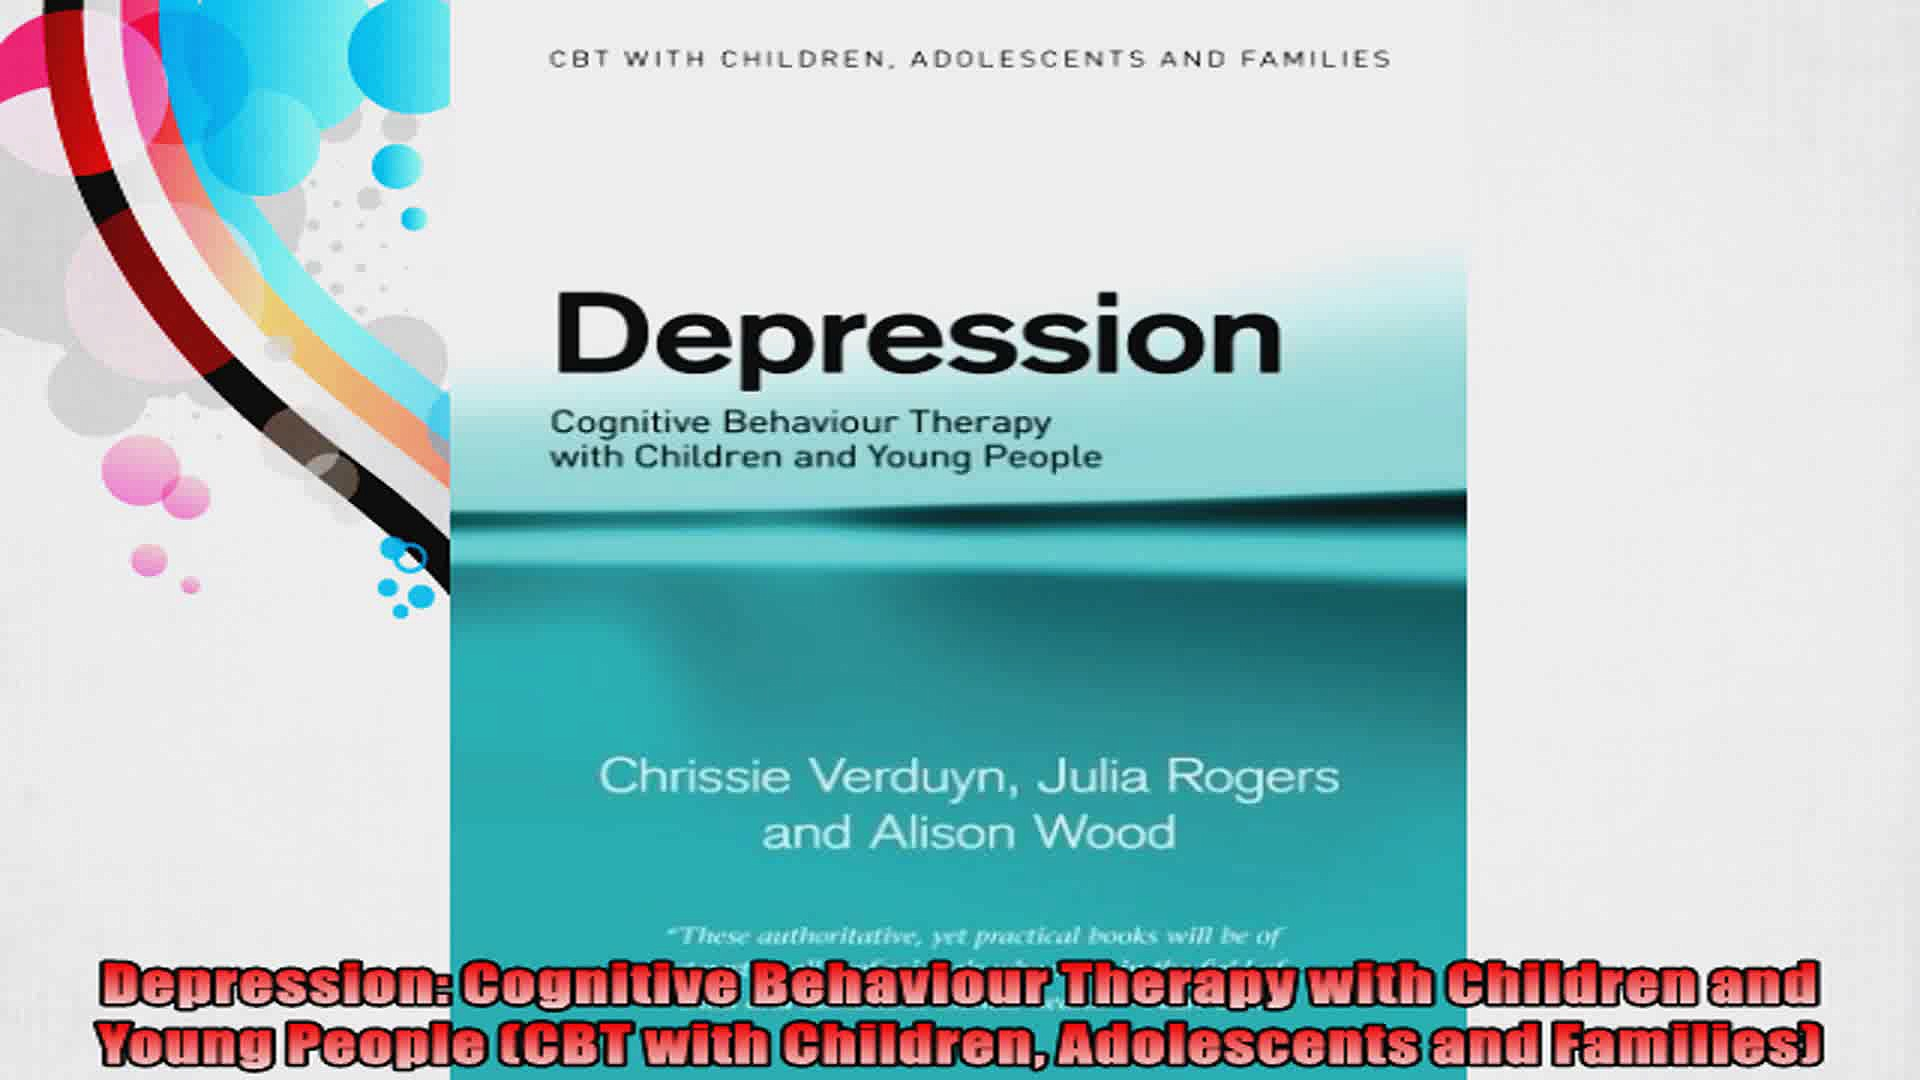 Depression Cognitive Behaviour Therapy with Children and Young People CBT with Children